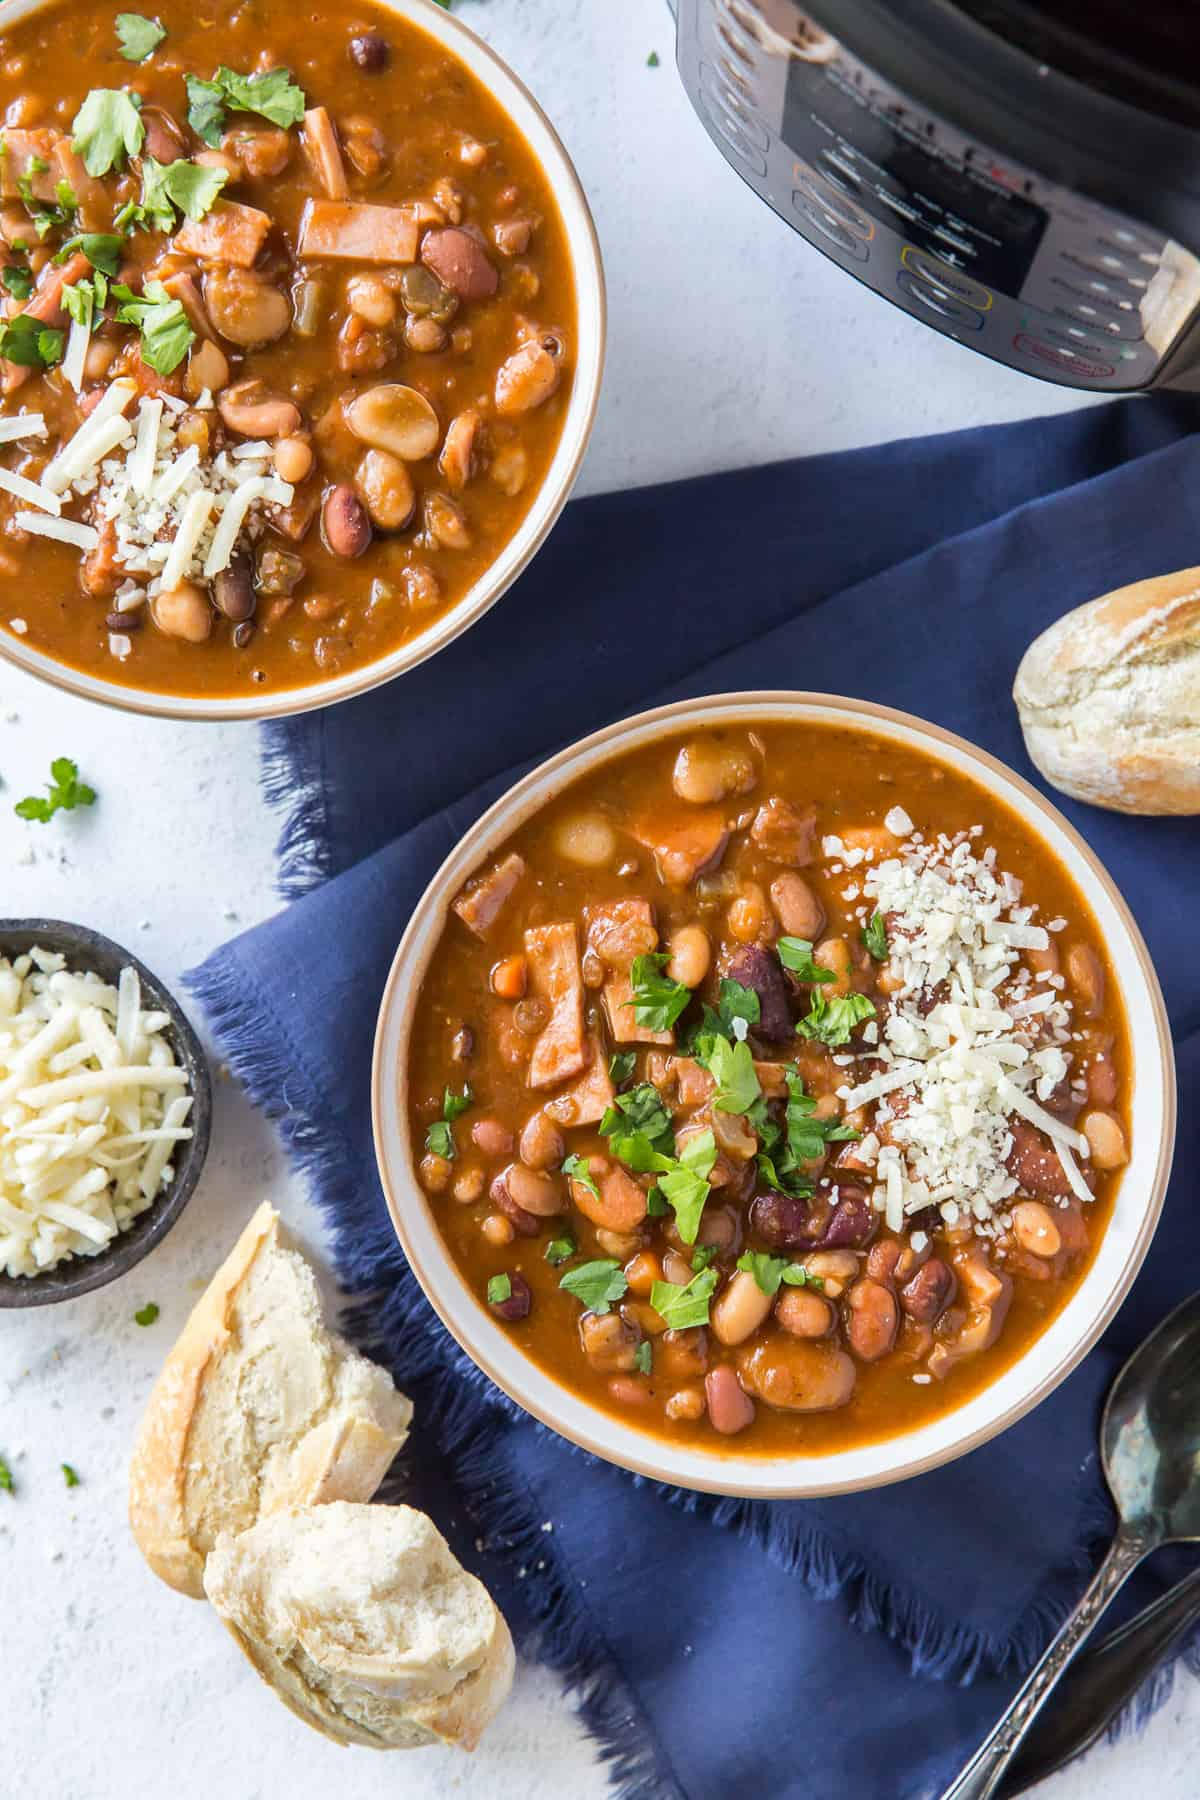 Two bowls of bean soup in front of an Instant Pot.